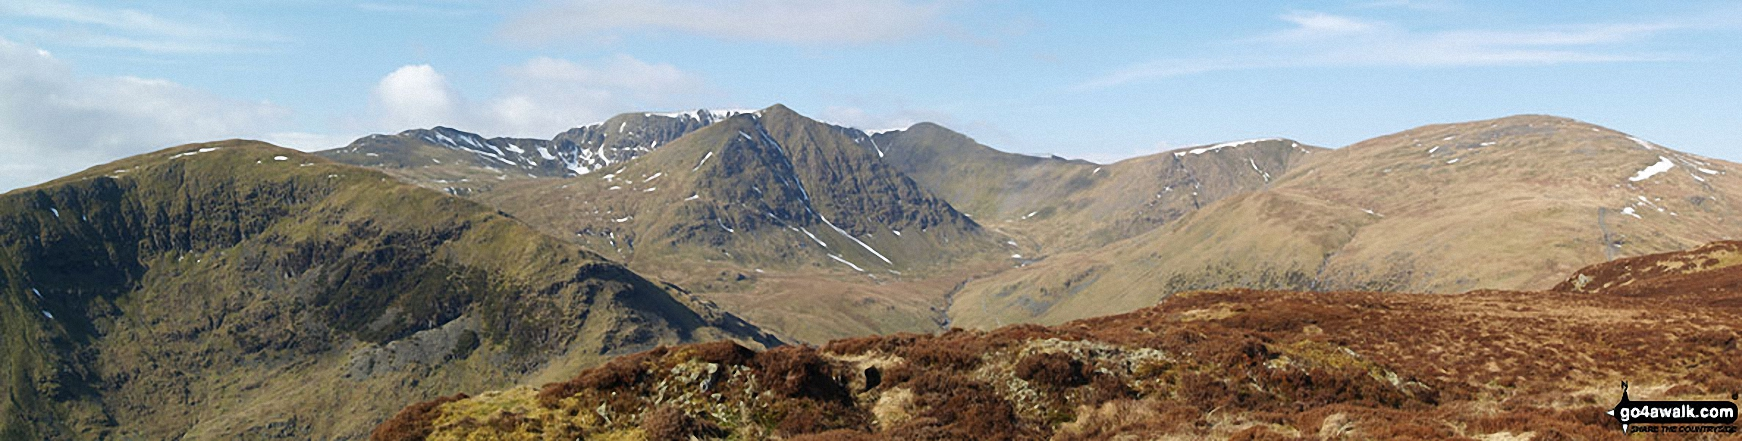 Birkhouse Moor (foreground left), Catstye Cam (foreground centre), White Side (centre right) and Raise (Helvellyn) (right) with Striding Edge, Helvellyn and Lower Man (Helvellyn) in the background from Sheffield Pike